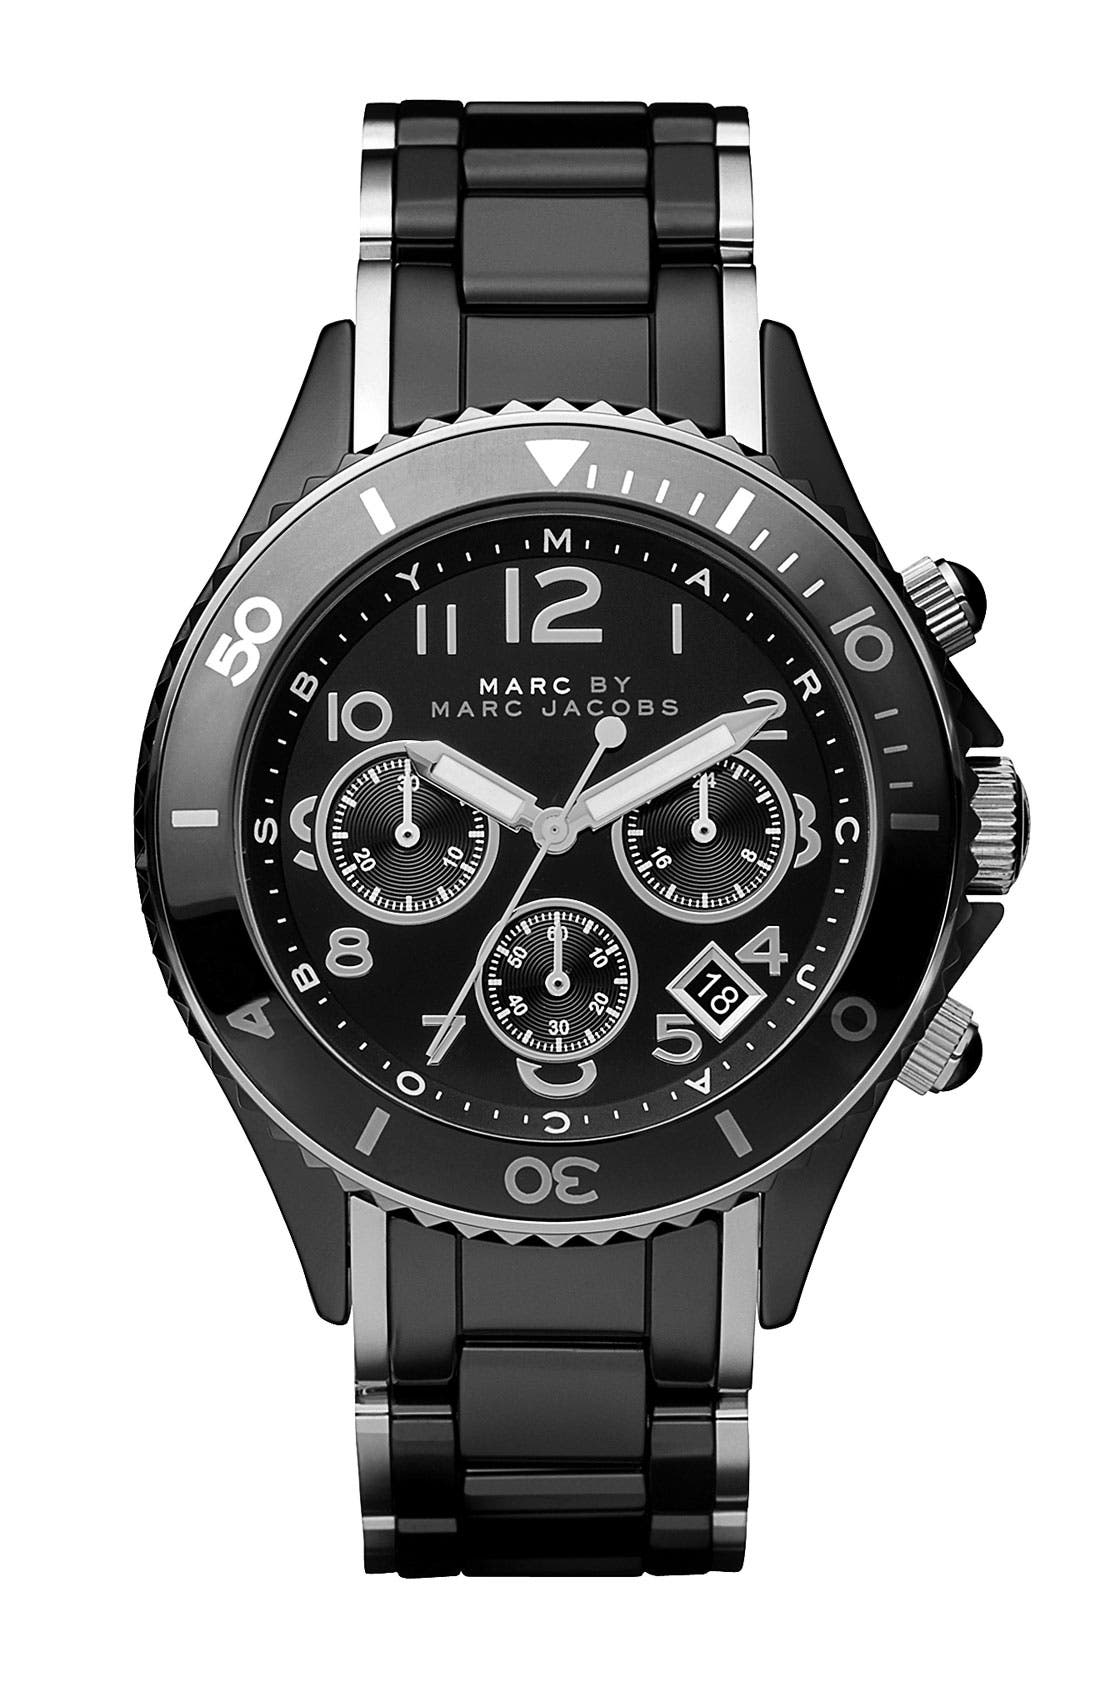 Main Image - MARC BY MARC JACOBS 'Rock' Ceramic Chronograph Watch